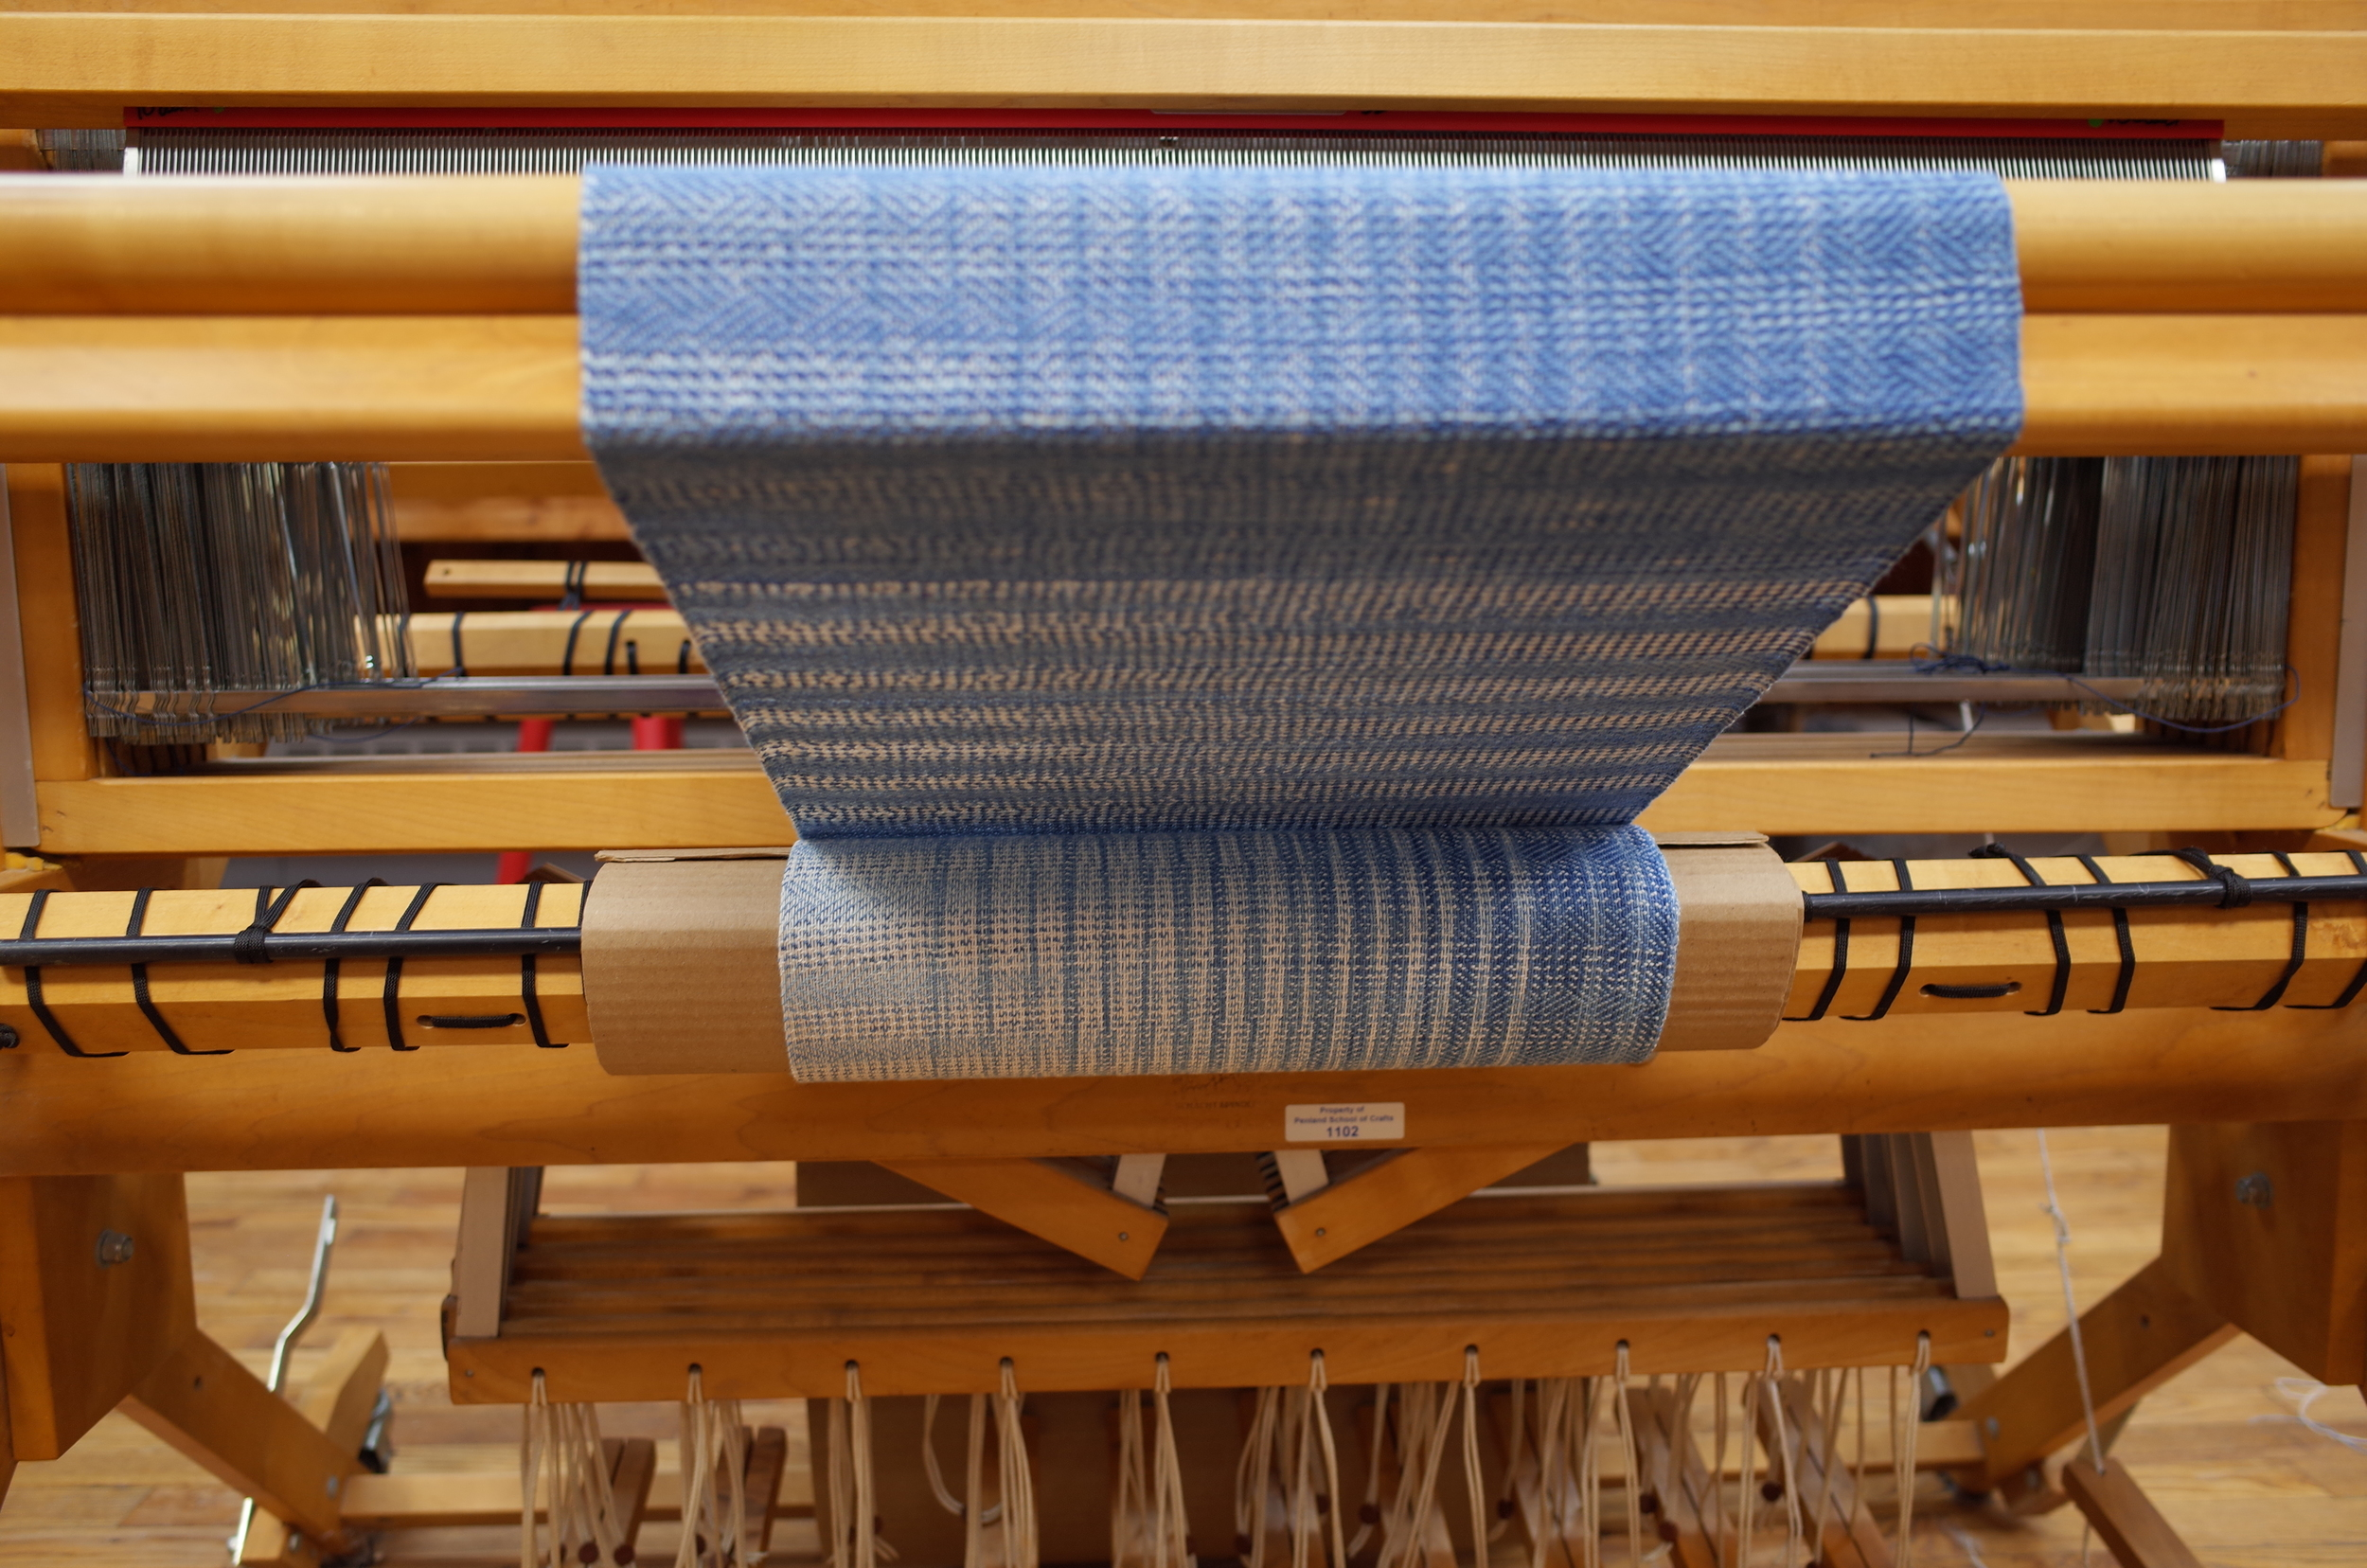 Finished weaving wound onto the front beam.